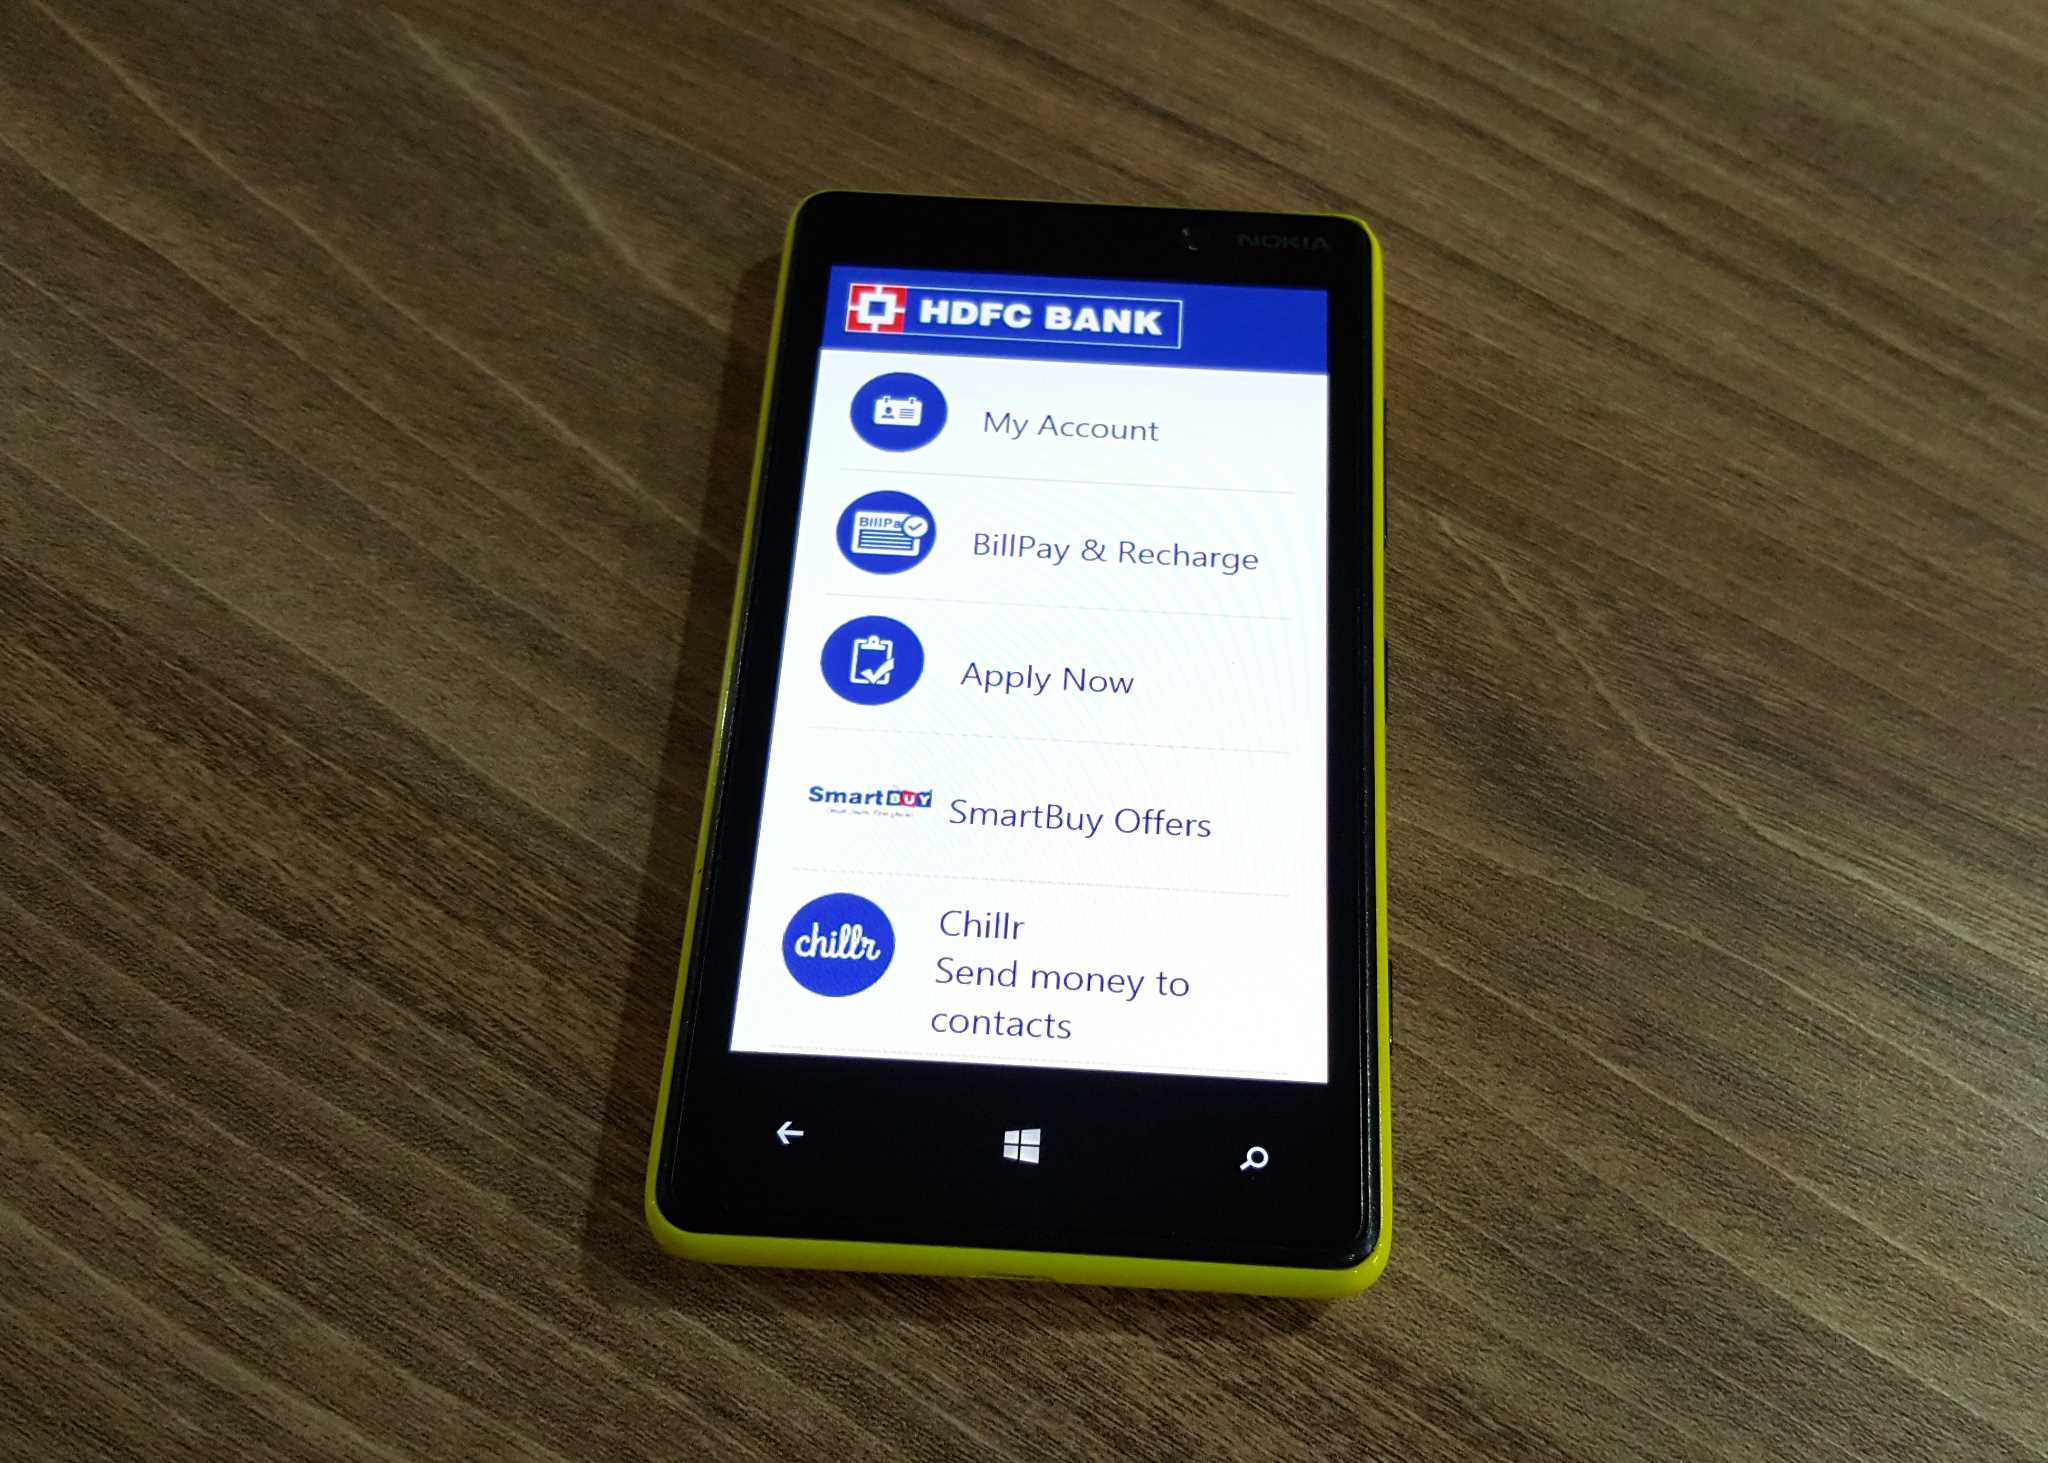 The Latest Hdfc Bank App Update Integrates Chillr And